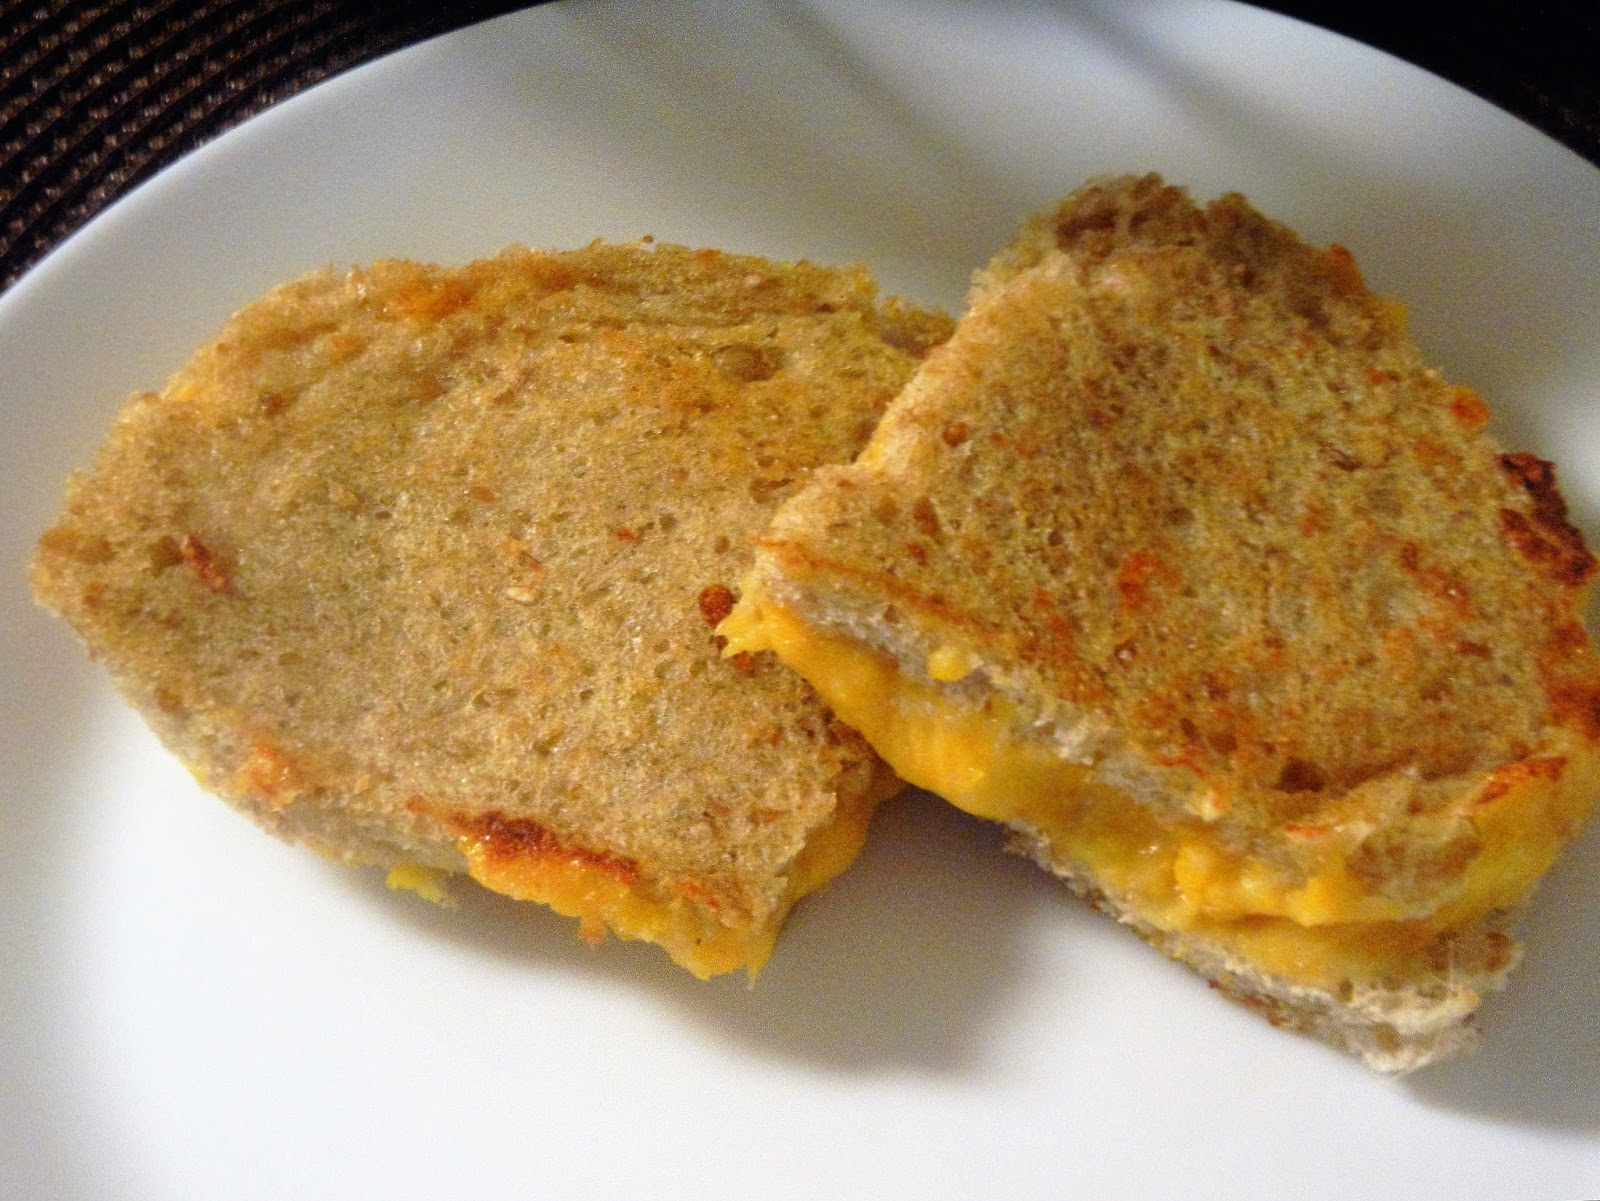 Gitas kitchen a blog for indian diabetic recipes and healthy butternut squash cheese sandwich forumfinder Images